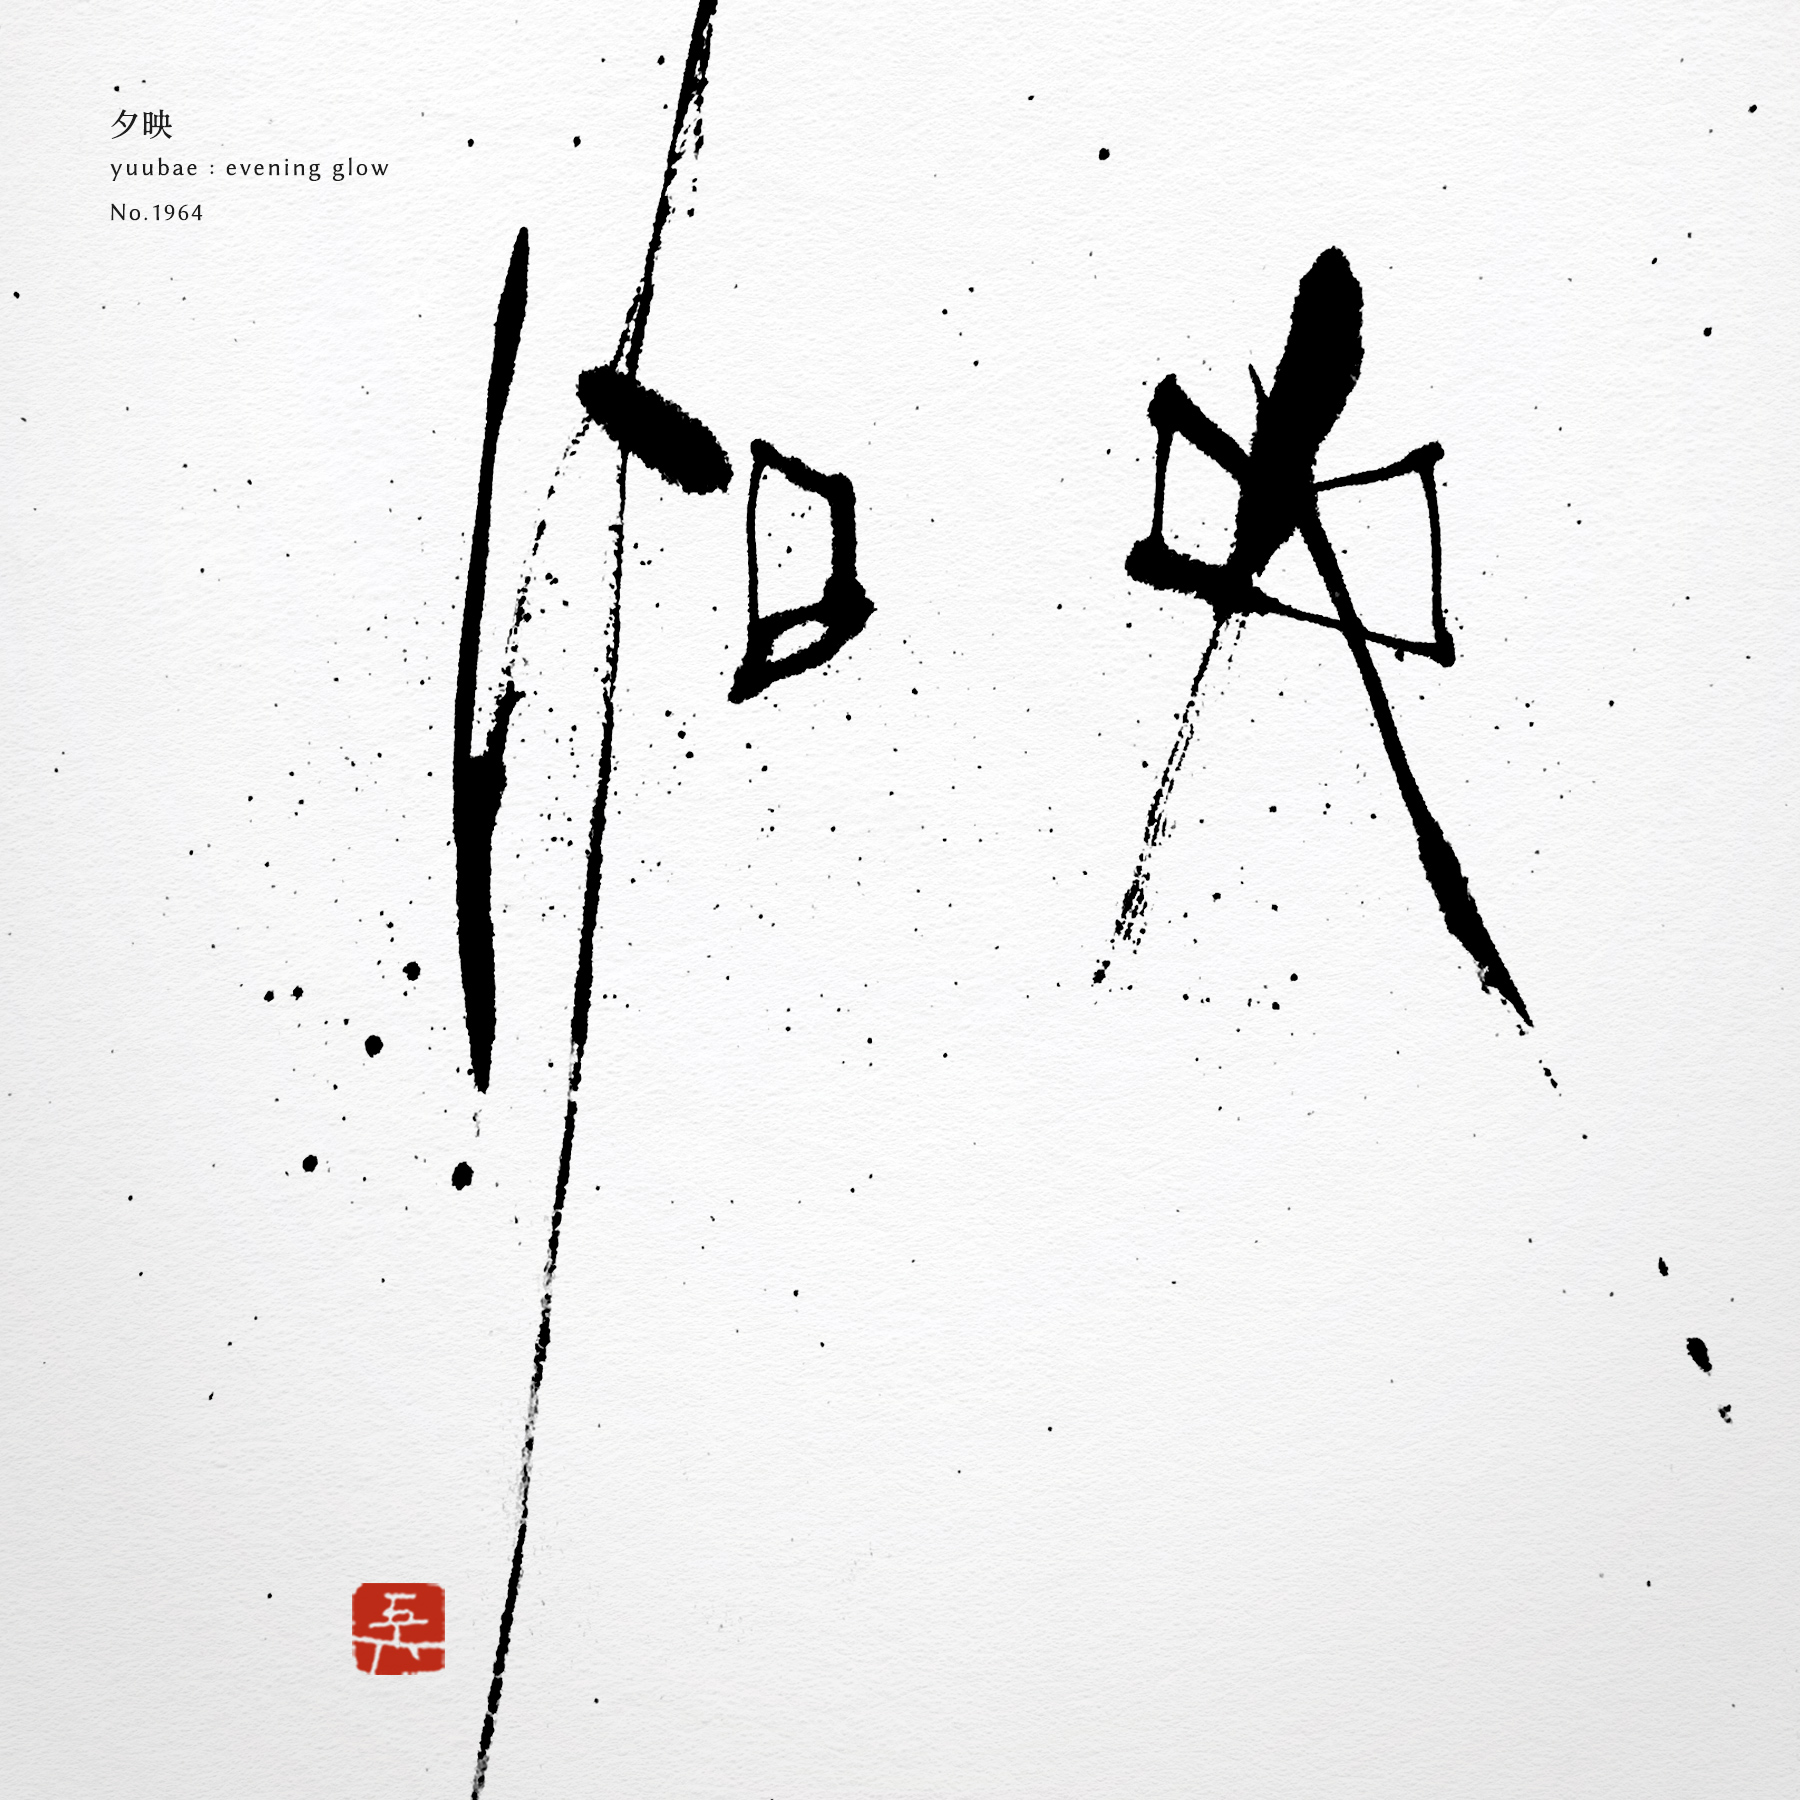 夕映 | evening glow 書道作品 japaneseart japanese calligraphy 書家 田川悟郎 Goroh Tagawa